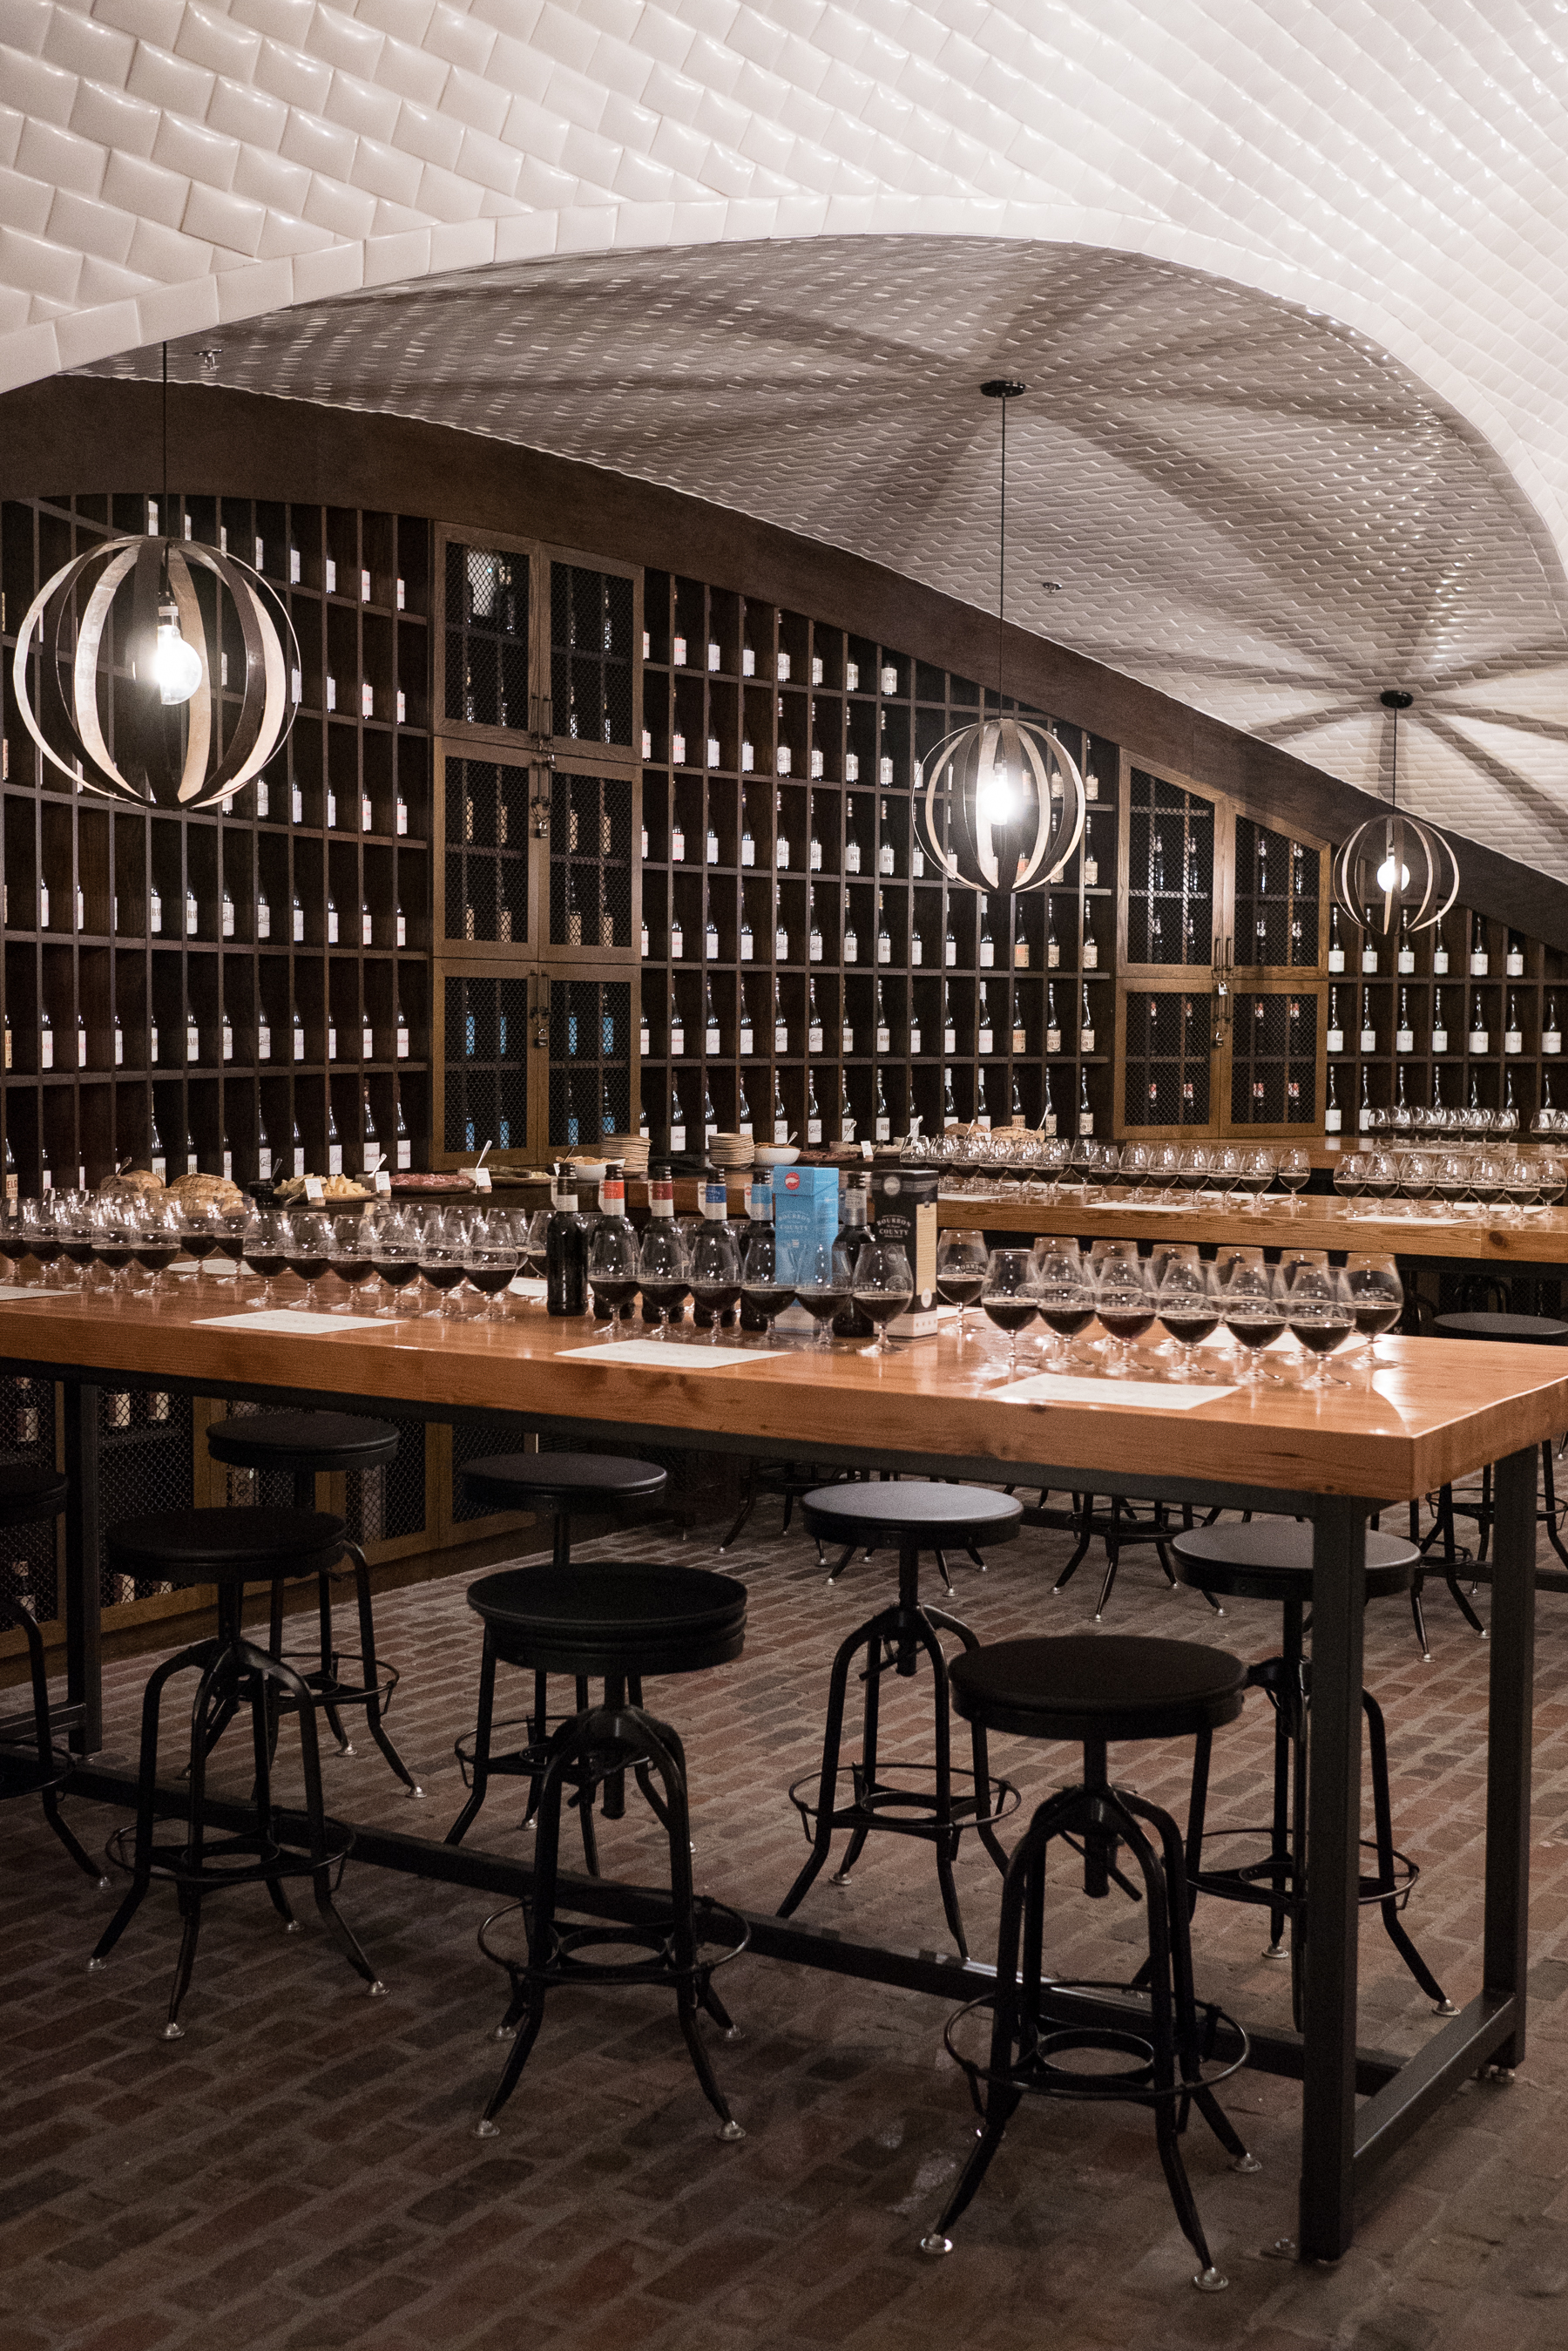 Goose Island's new Barrel House–complete with barrel vault ceilings–the venue for this year's tasting.